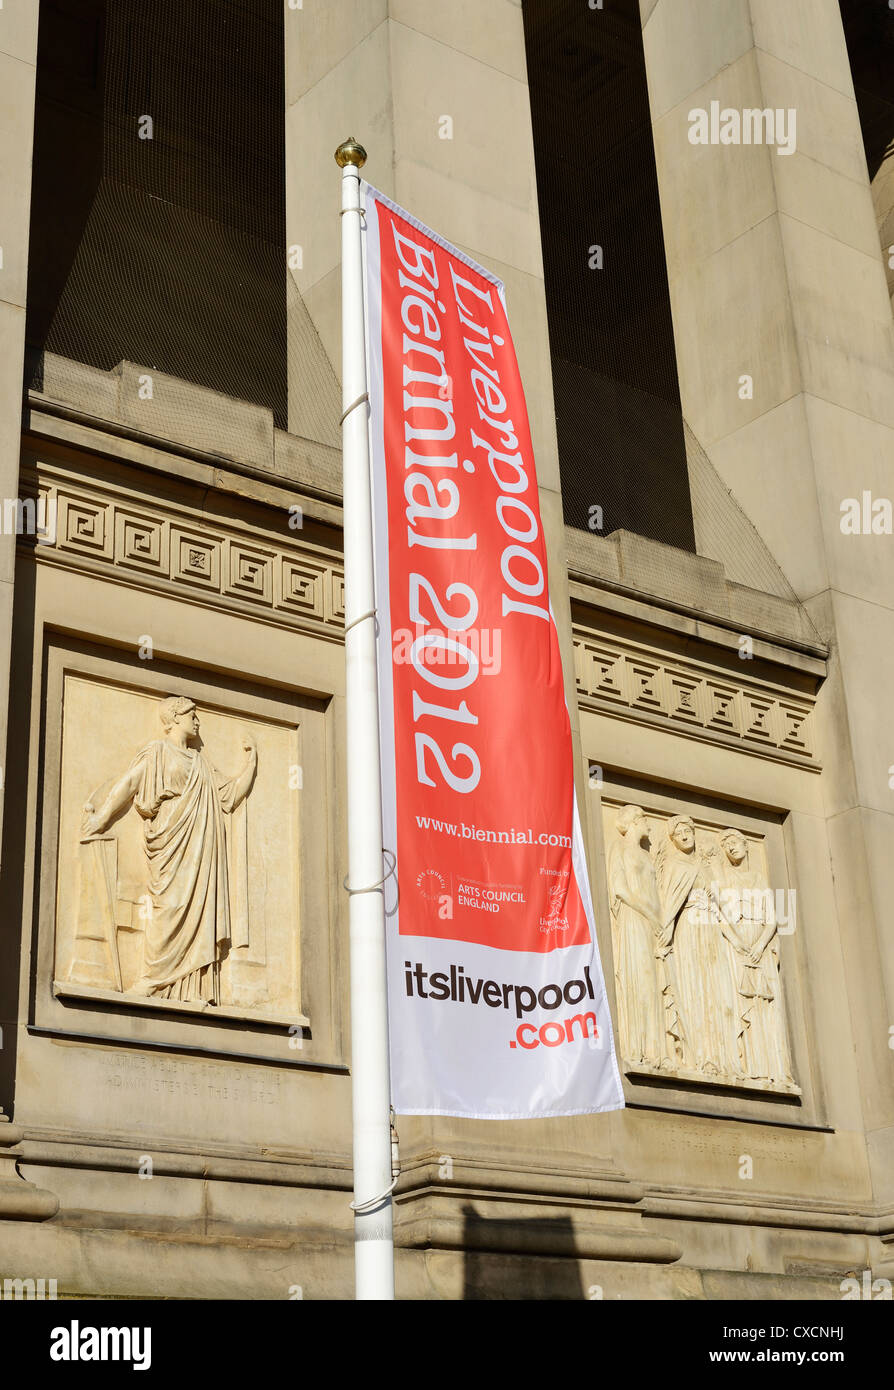 Liverpool Biennial 2012 banner outside St Georges Hall - Stock Image